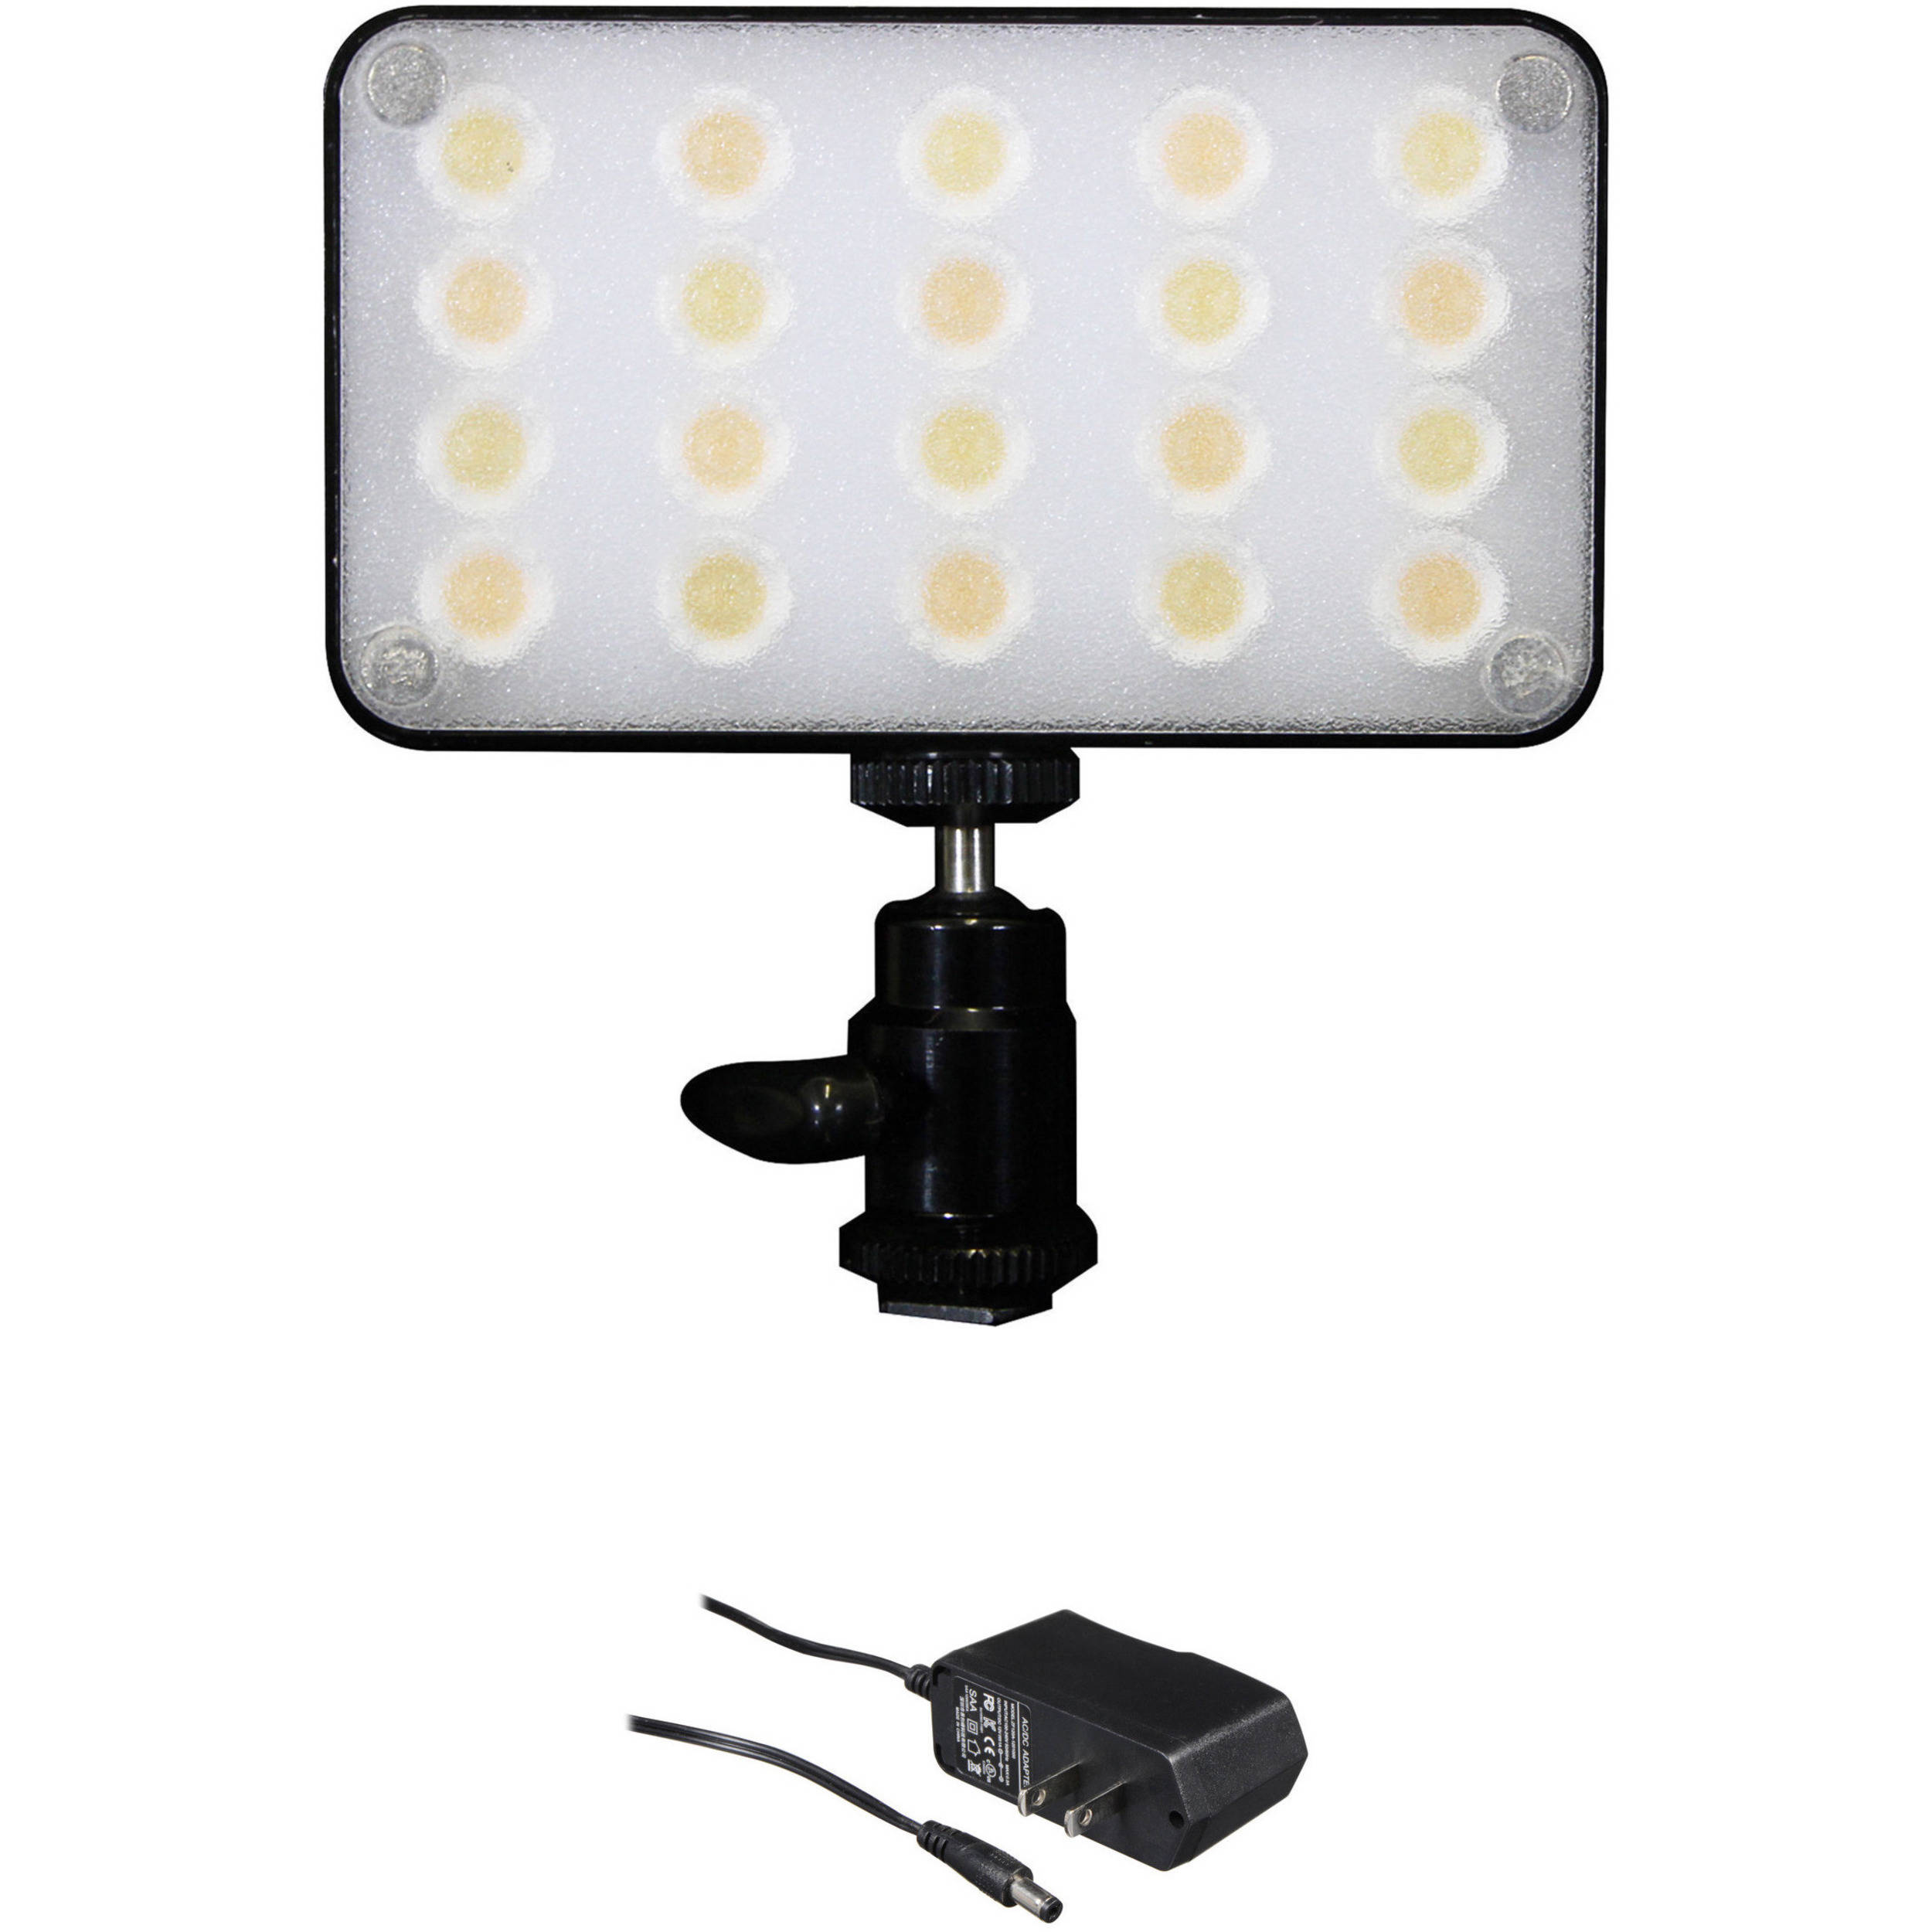 Core swx torchled bolt 250w on camera light with power supply core swx torchled bolt 250w on camera light with power supply kit arubaitofo Choice Image